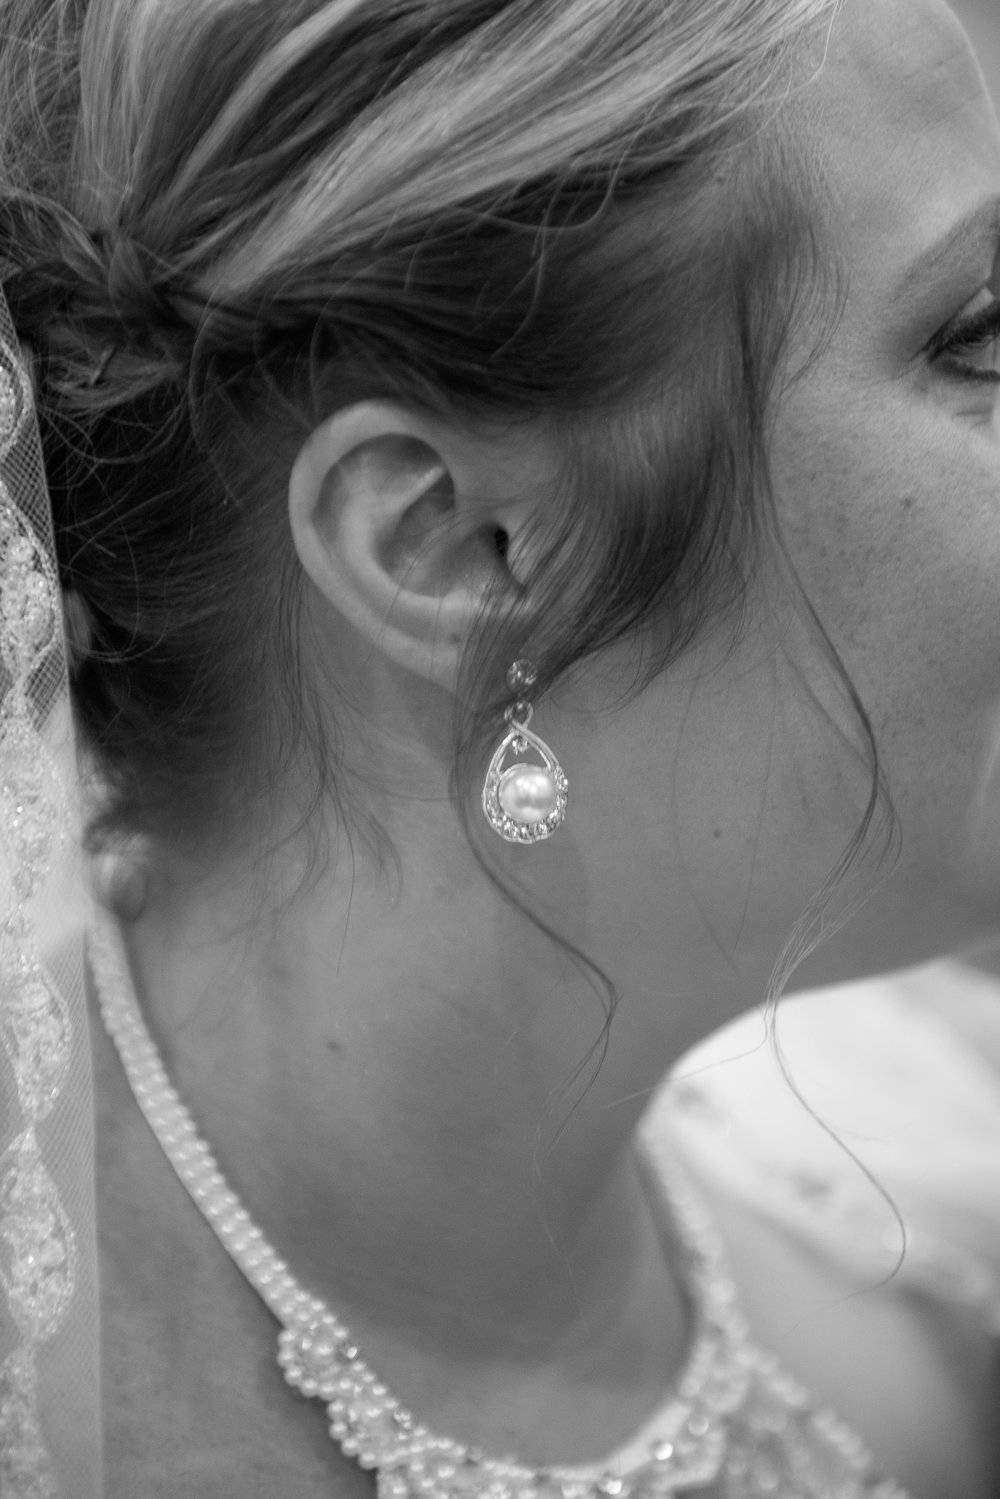 AkersKing_wedding_bw-371 copy.jpg